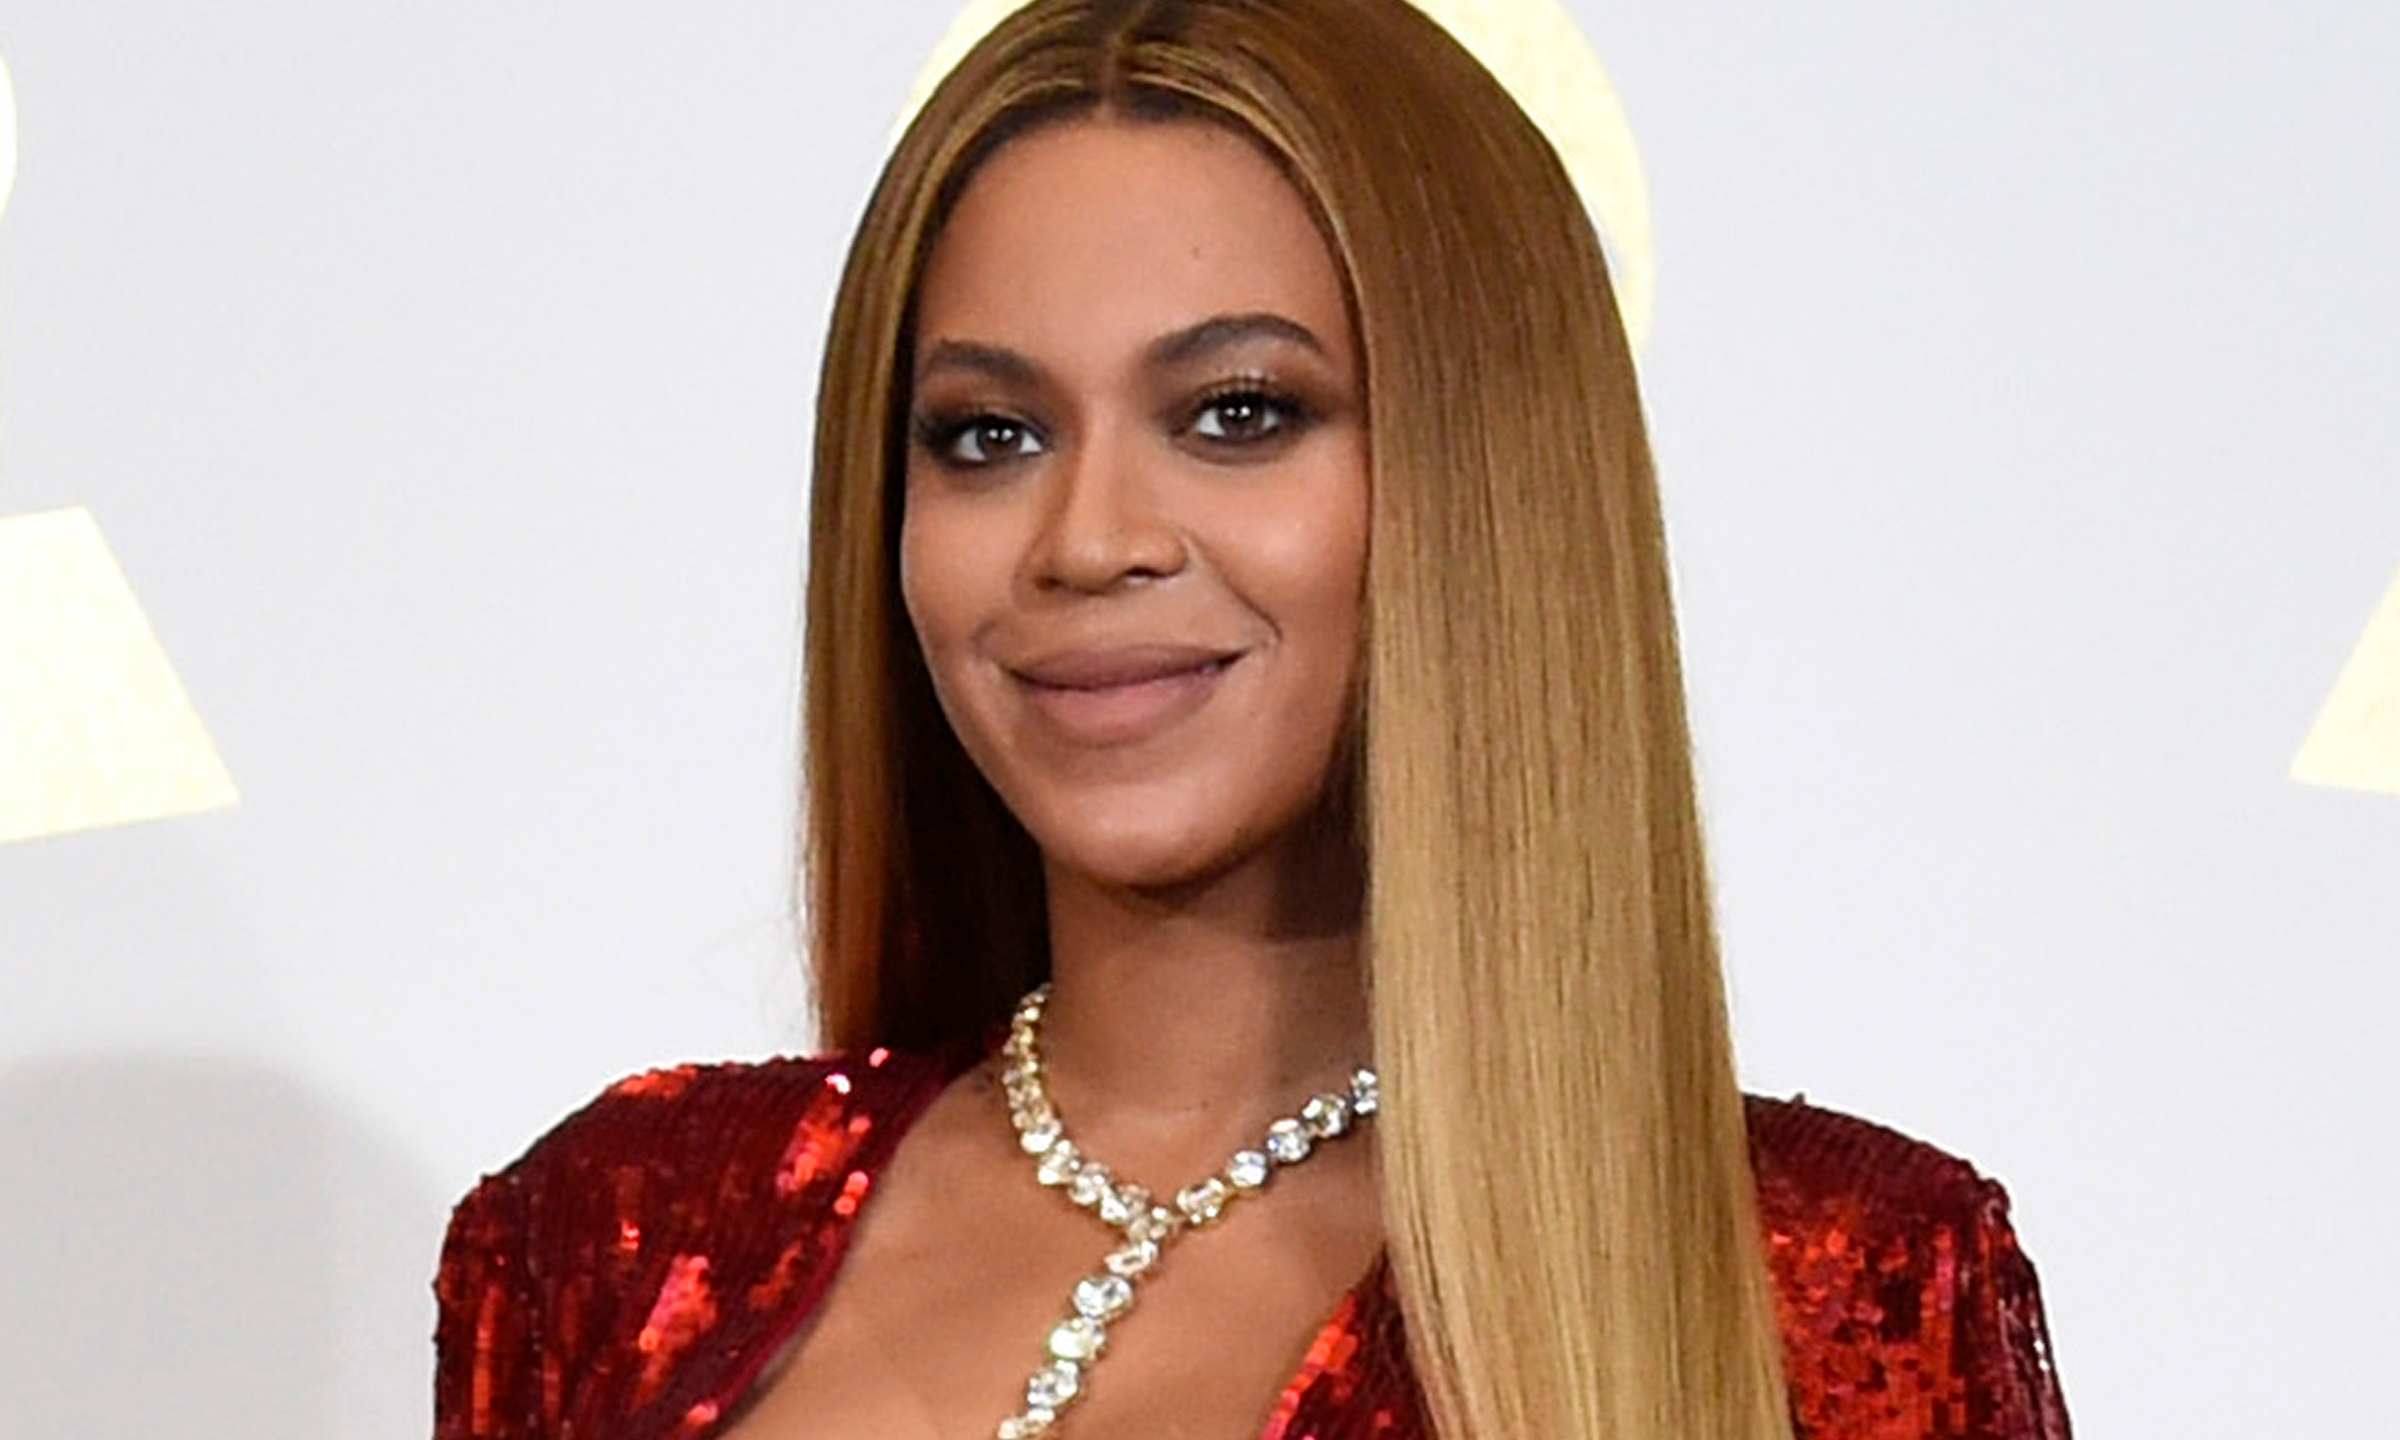 In this Feb. 12, 2017 file photo, Beyonce poses in the press room at the 59th annual Grammy Awards in Los Angeles. The pop star scored multiple Grammy nominations Tuesday, making her the leading contender with nine nominations. (Photo by Chris Pizzello/Invision/AP, File)